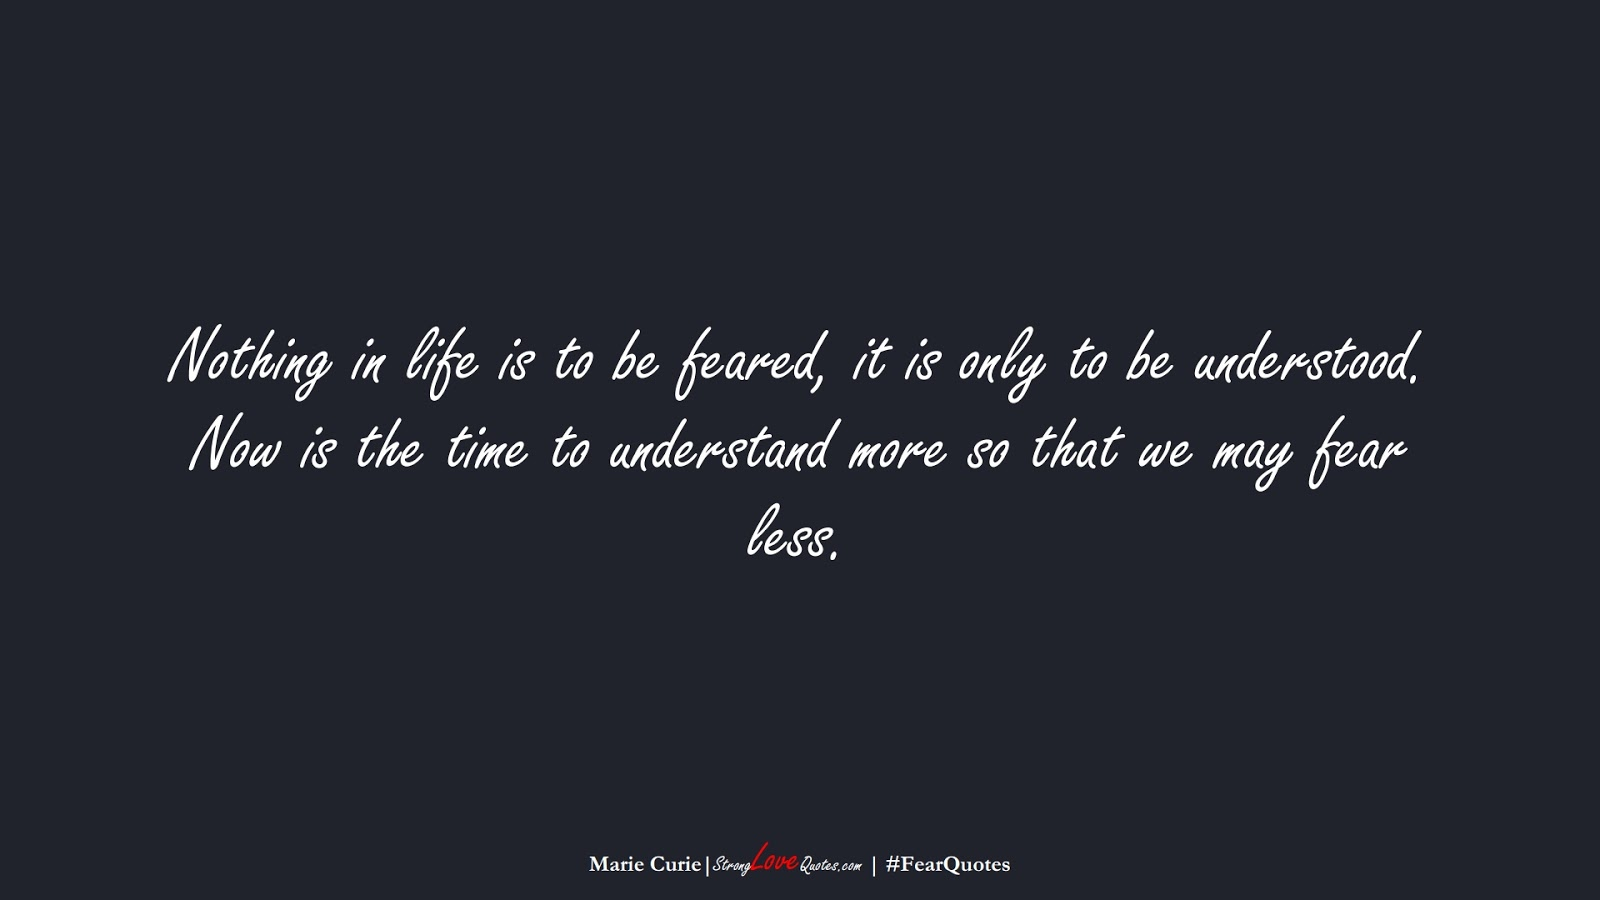 Nothing in life is to be feared, it is only to be understood. Now is the time to understand more so that we may fear less. (Marie Curie);  #FearQuotes